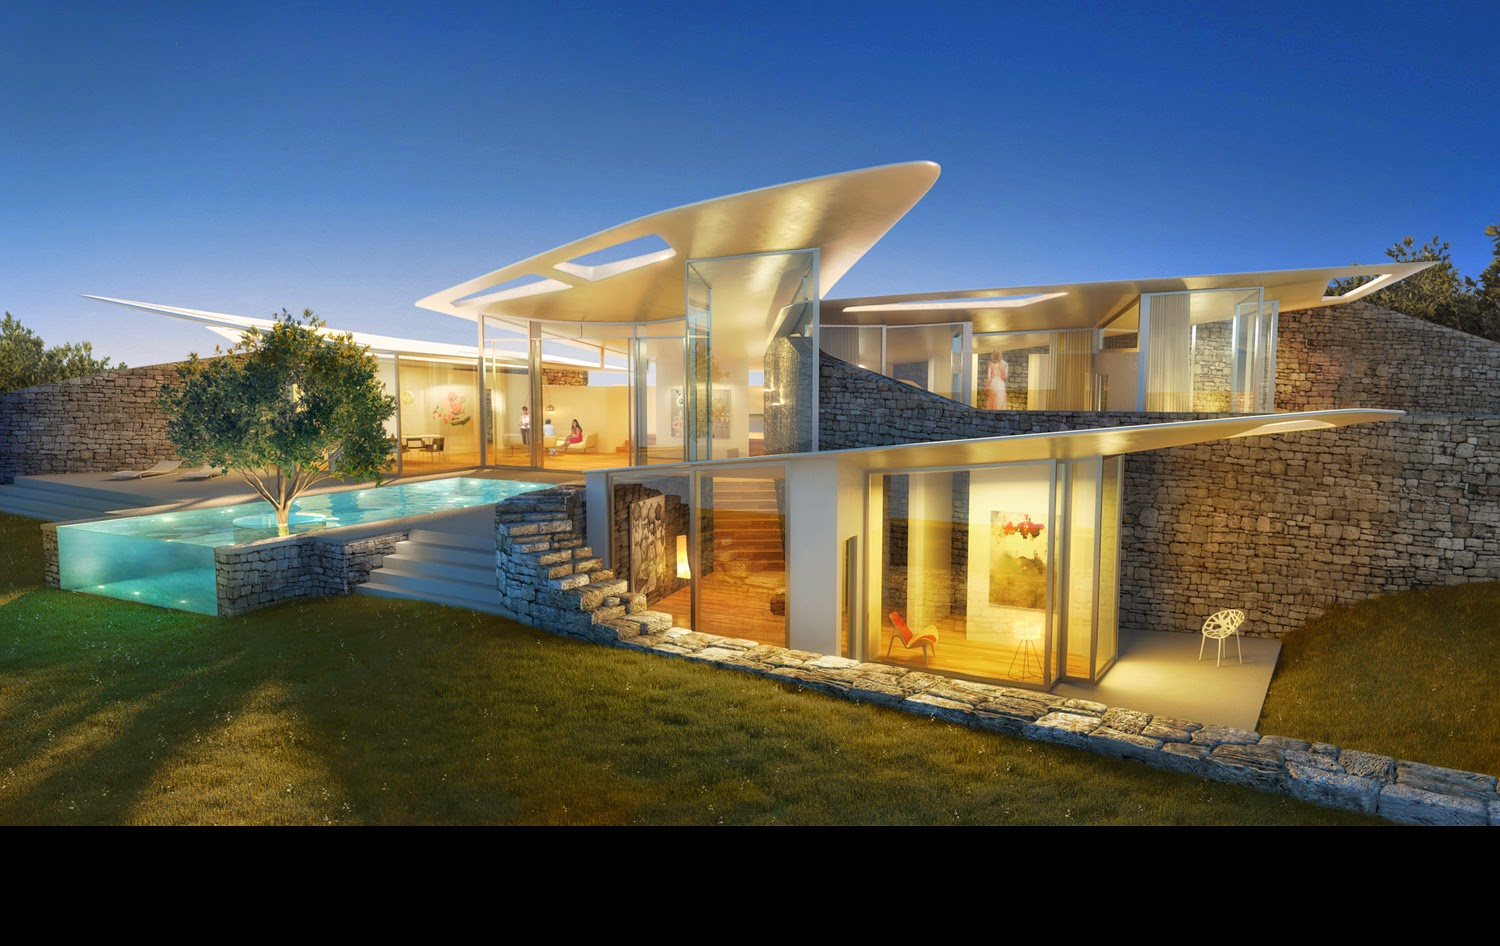 How is organic architecture and or